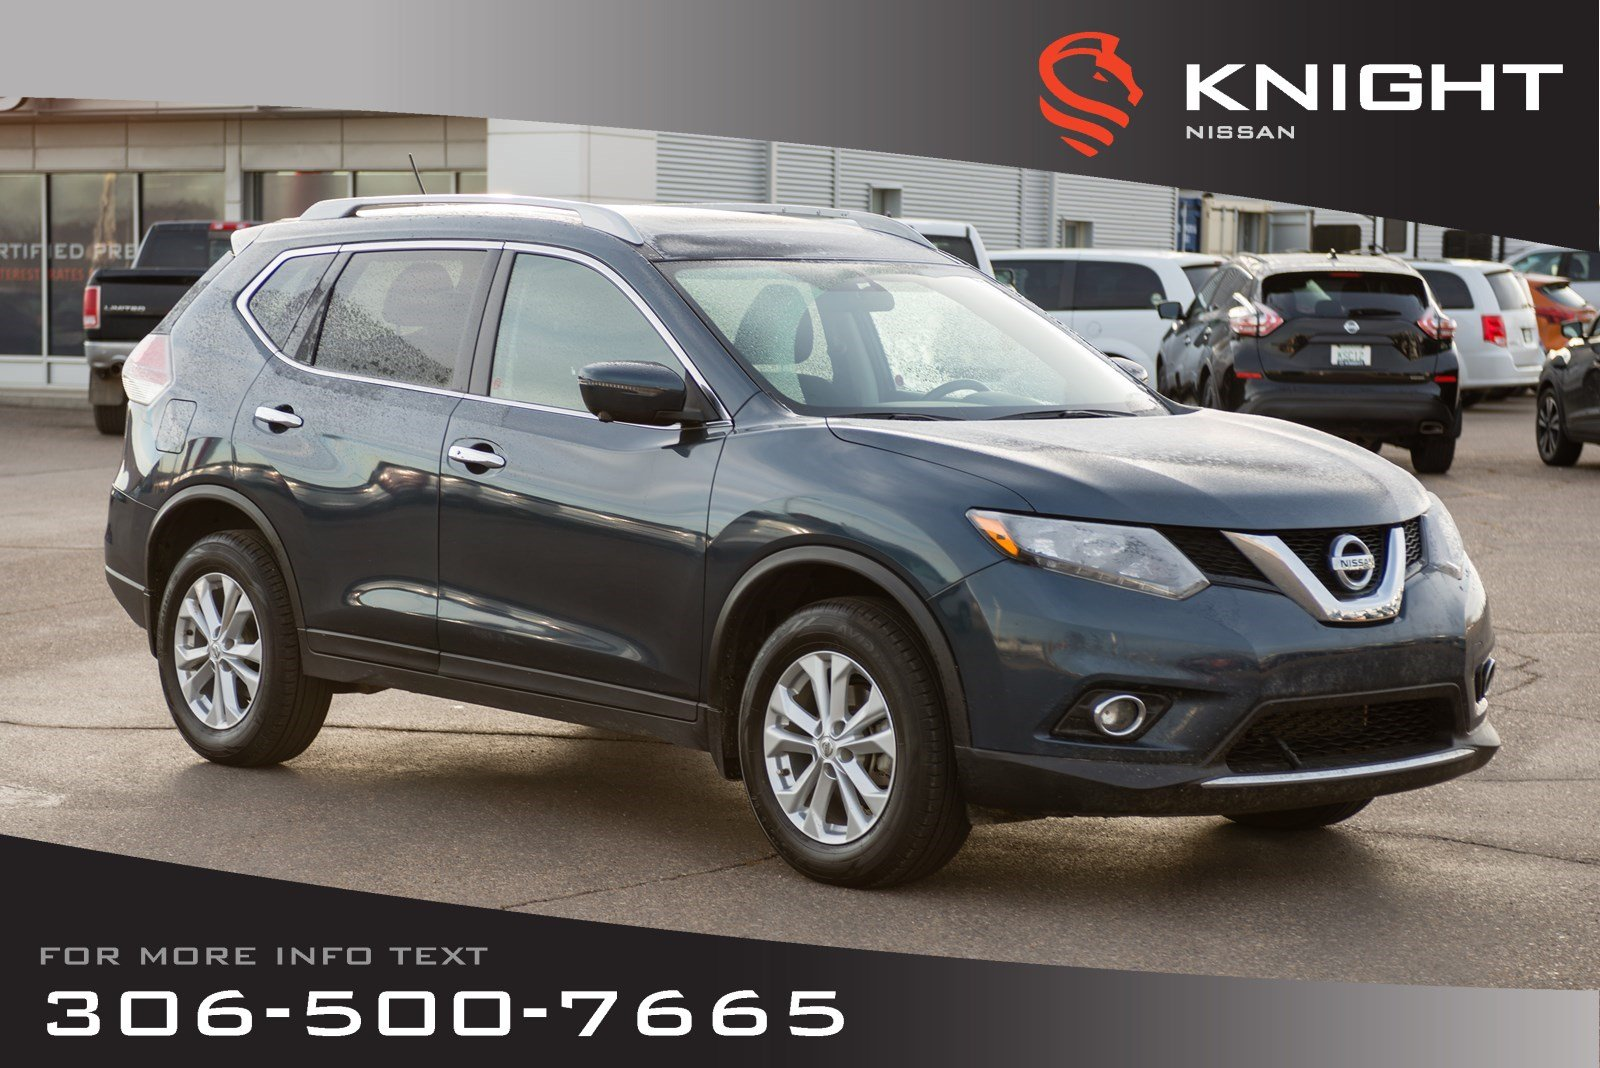 Nissan Rogue Seating >> Used 2016 Nissan Rogue Sv Technology Package Heated Seats Navigation Low Kms Sport Utility